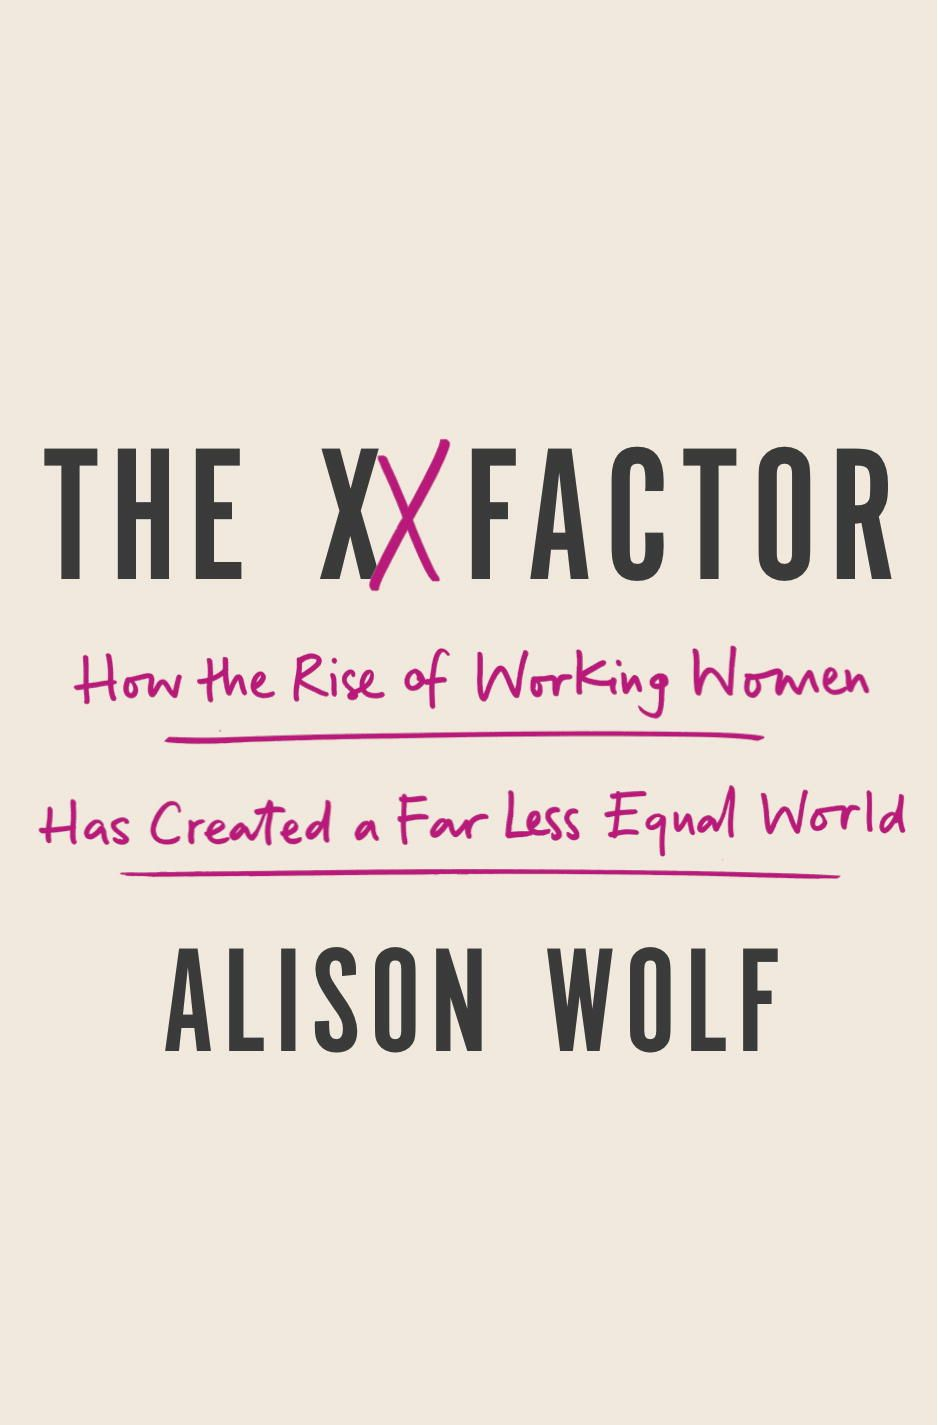 Surprising New Findings On Academic >> Noted British Academic And Journalist Alison Wolf Offers A